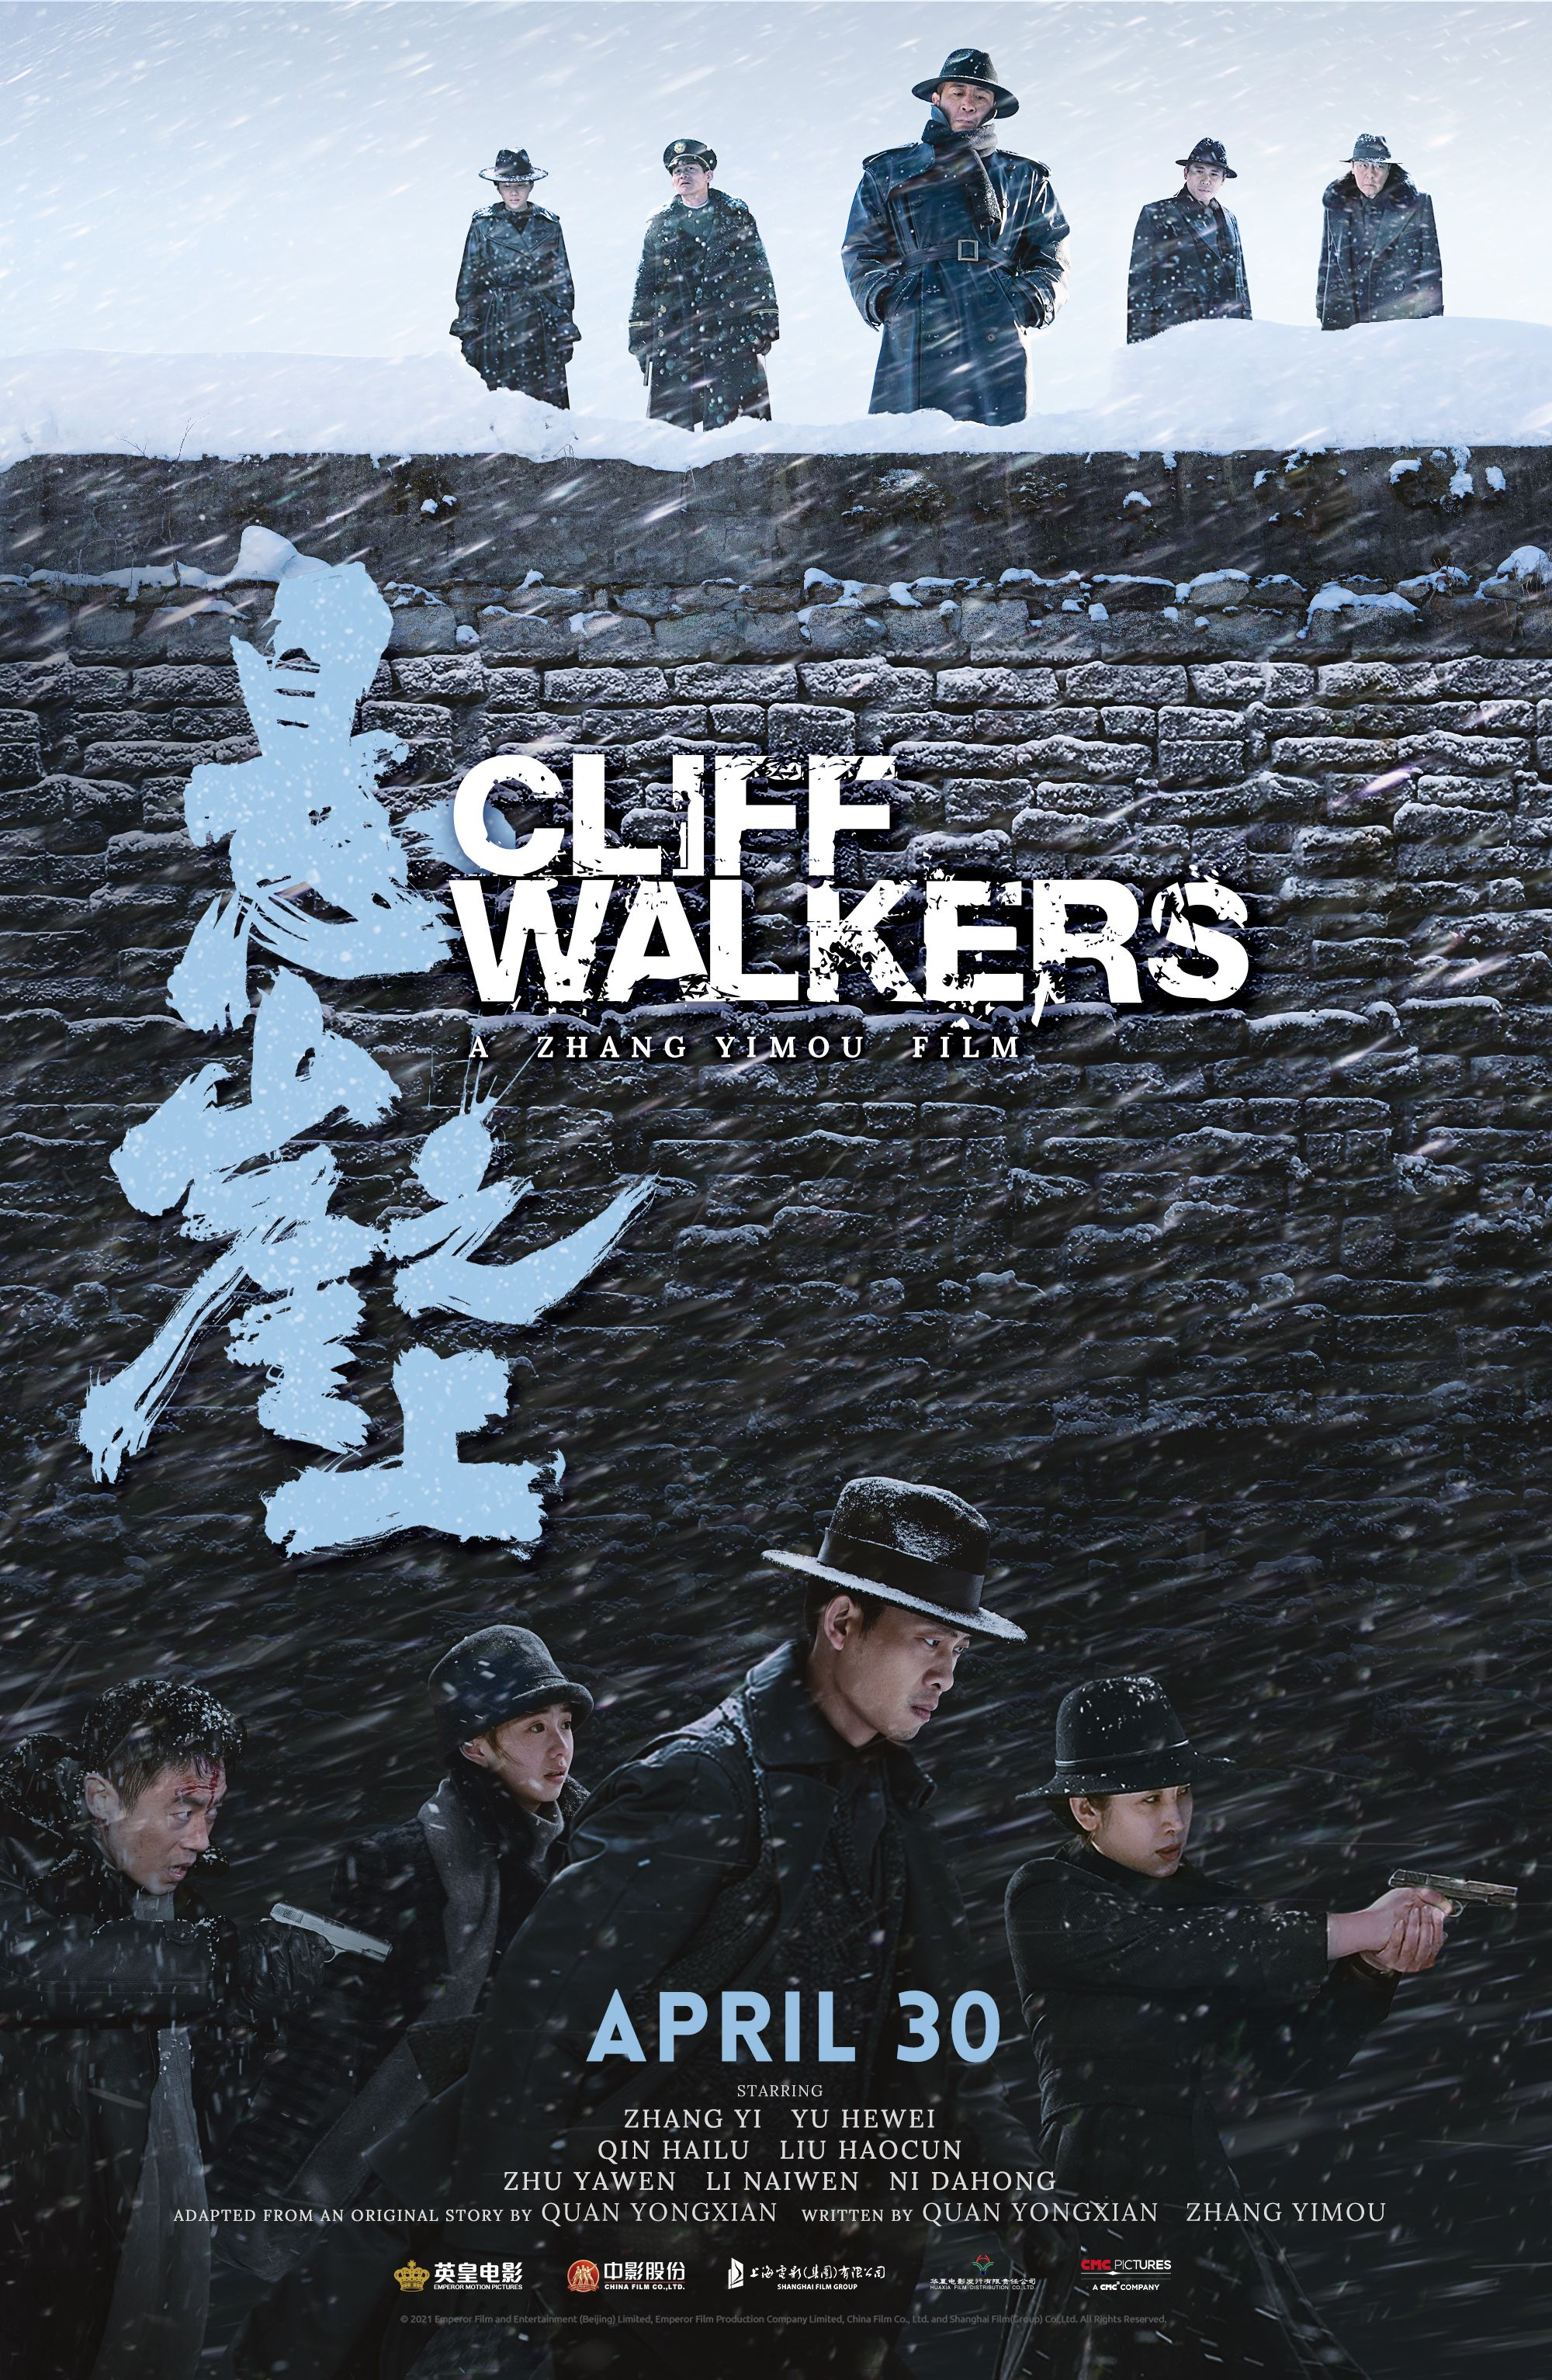 Movie poster image for CLIFF WALKERS